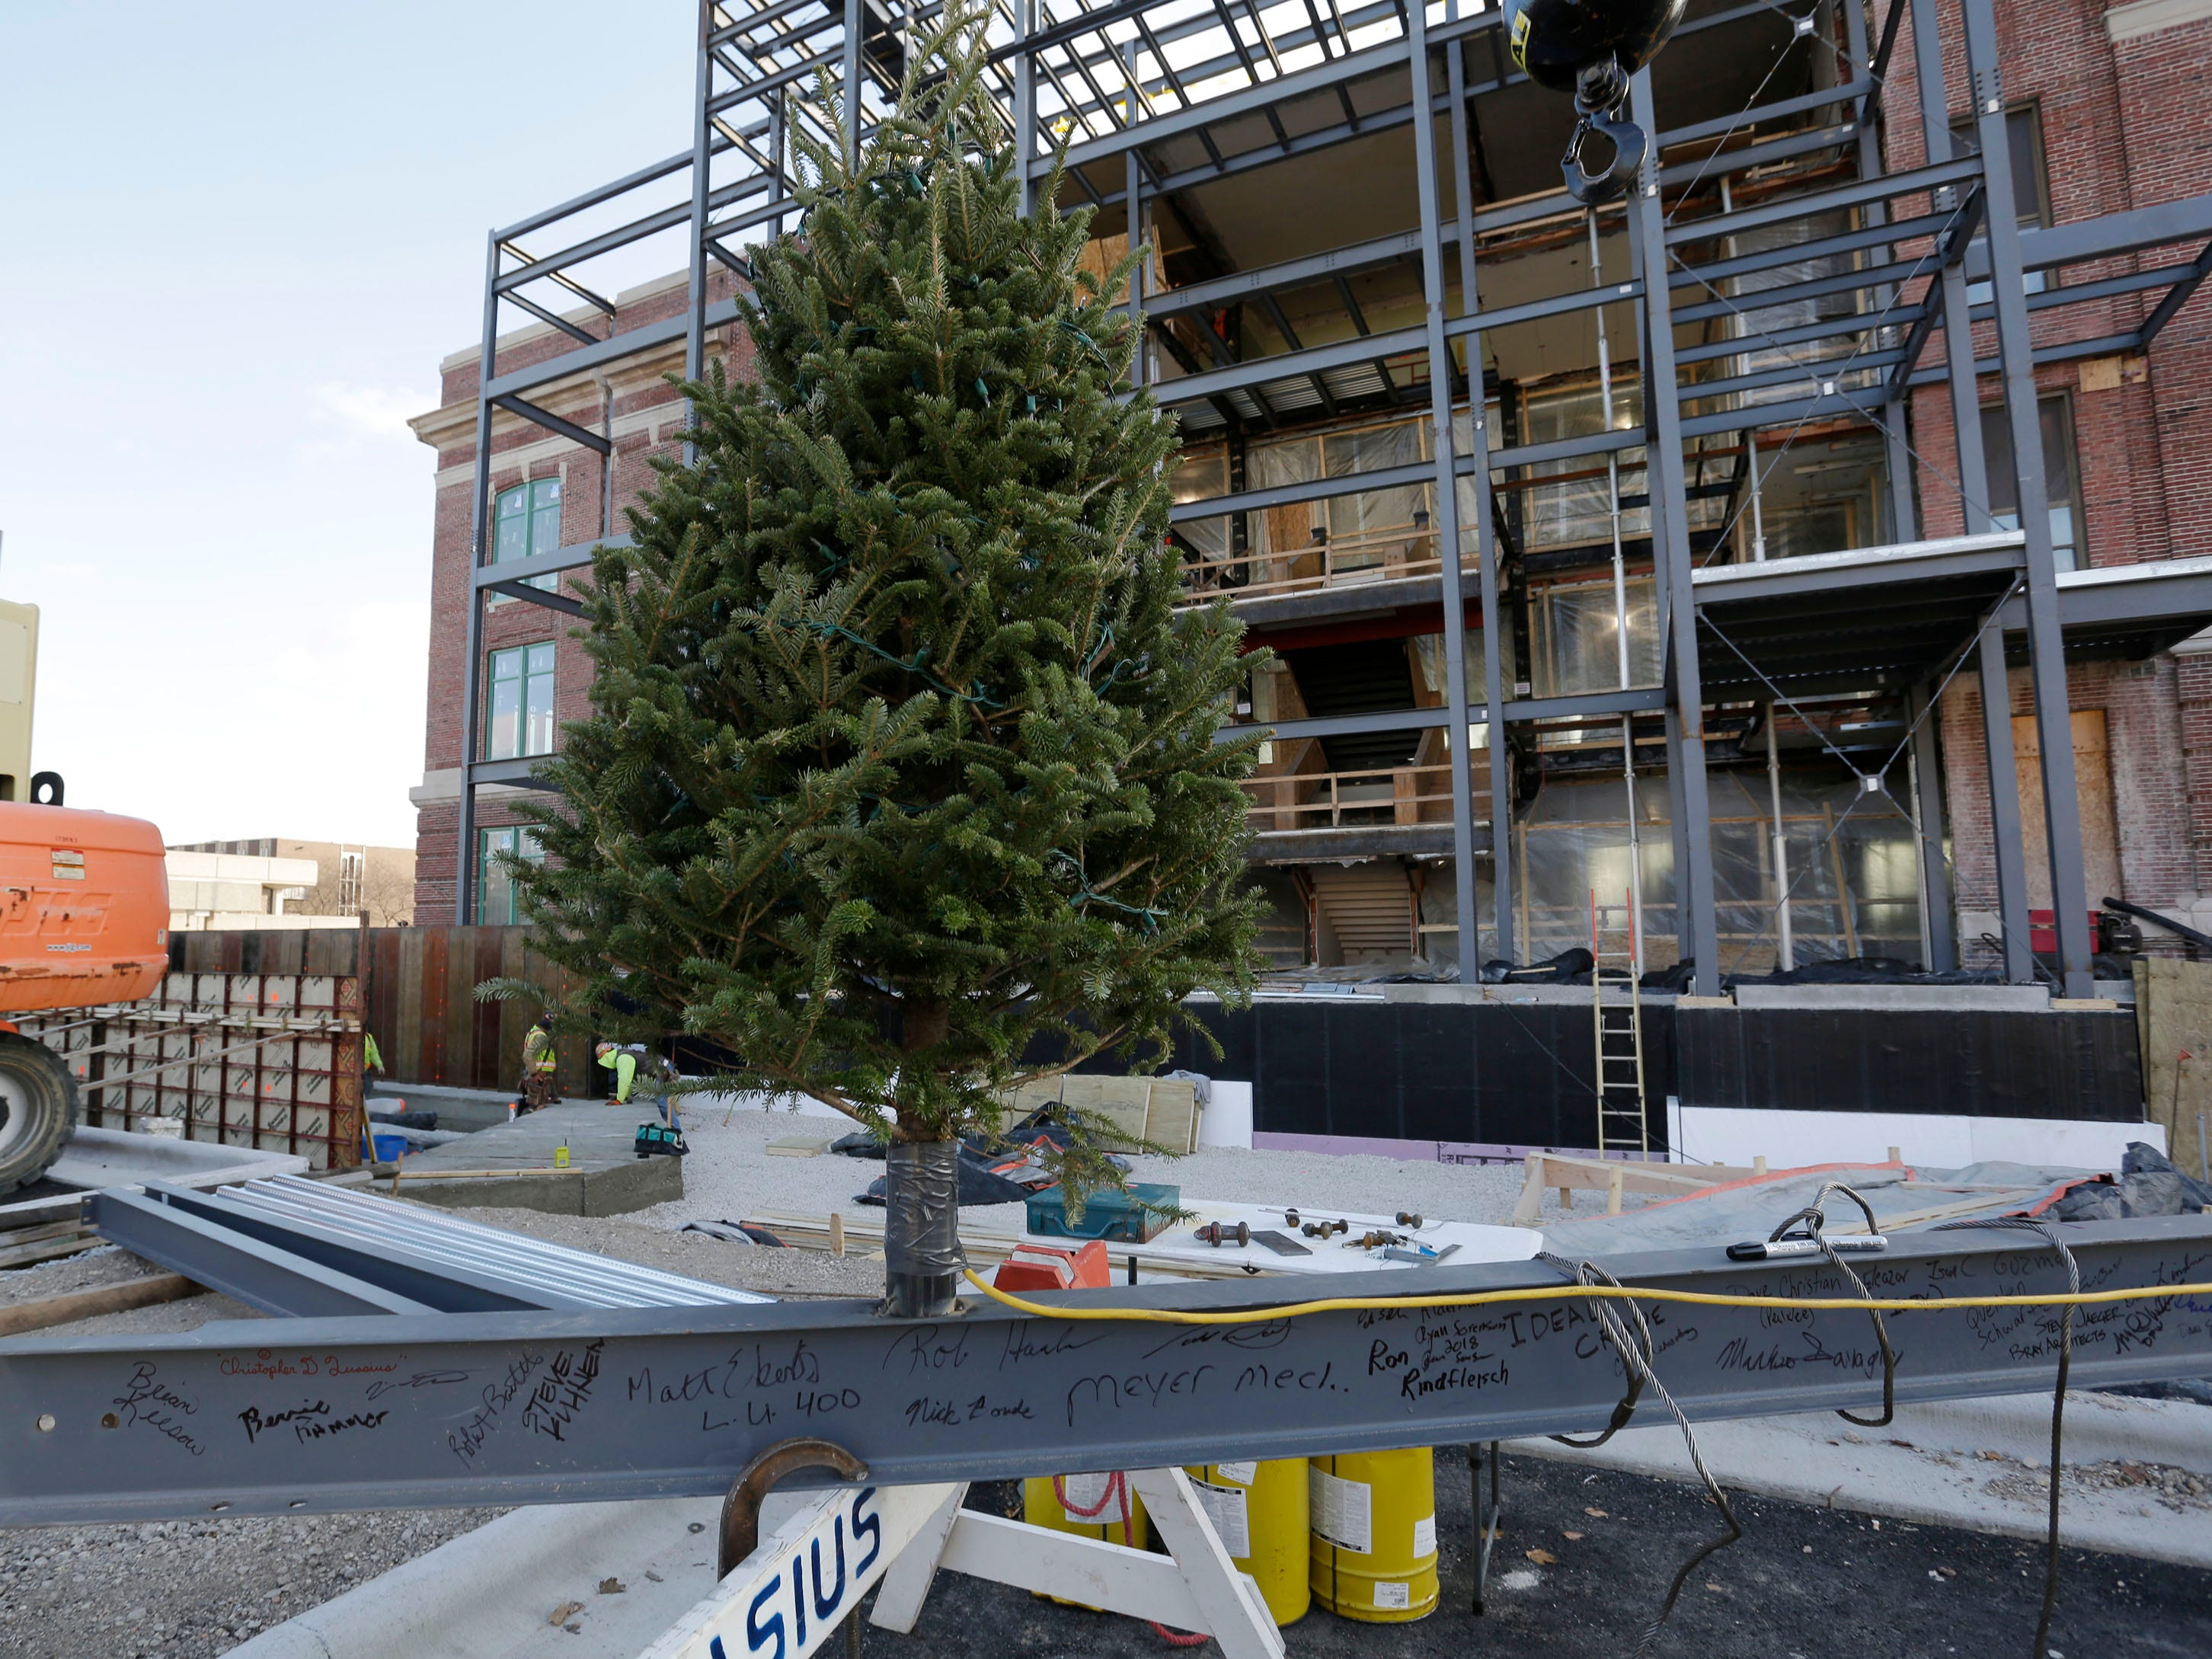 The last structural beam for the Sheboygan City Hall renovation project has a Christmas tree on it before a special topping off ceremony, Wednesday, December 5, 2018, in Sheboygan, Wis.  The city held a topping off ceremony Wednesday, which marked the last beam installed on the new front facade of the renovated structure.